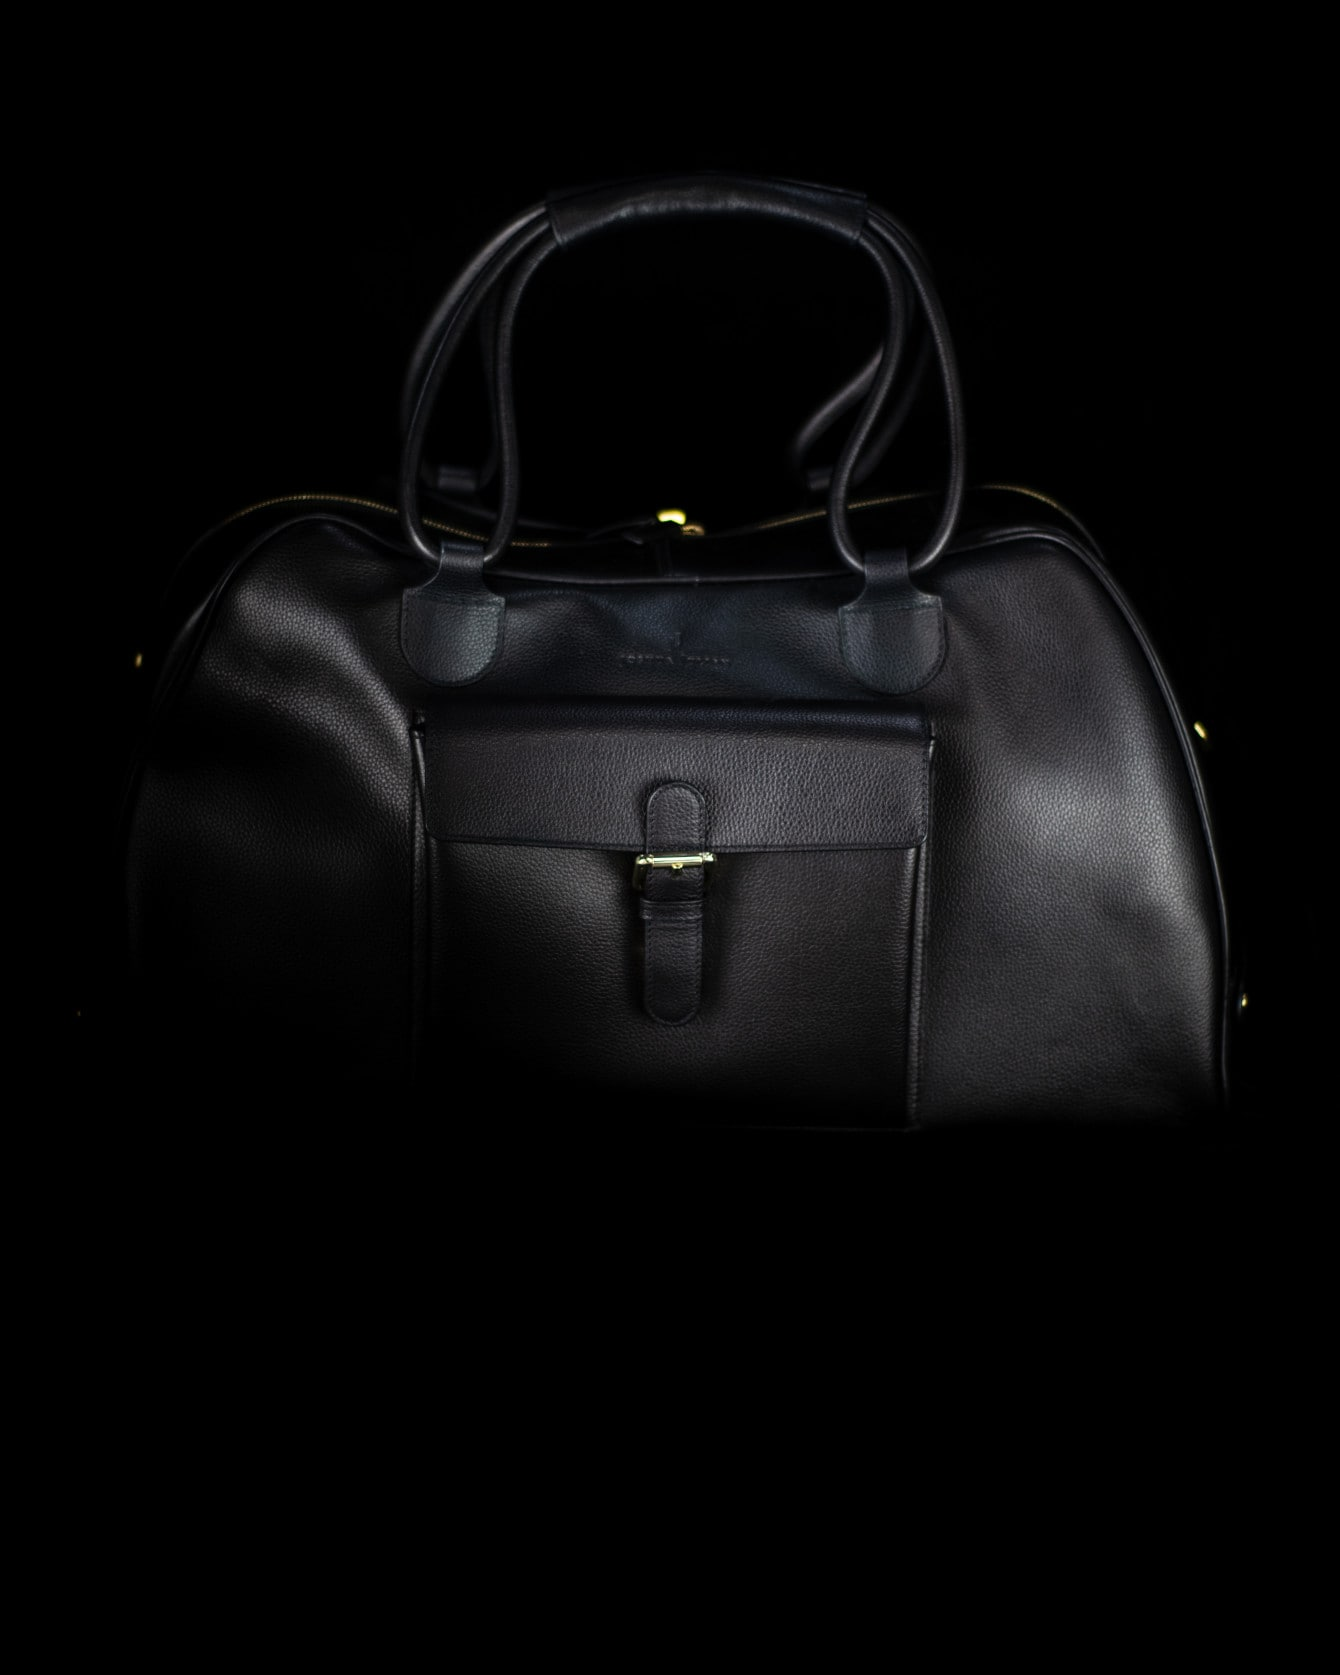 Leather goods image